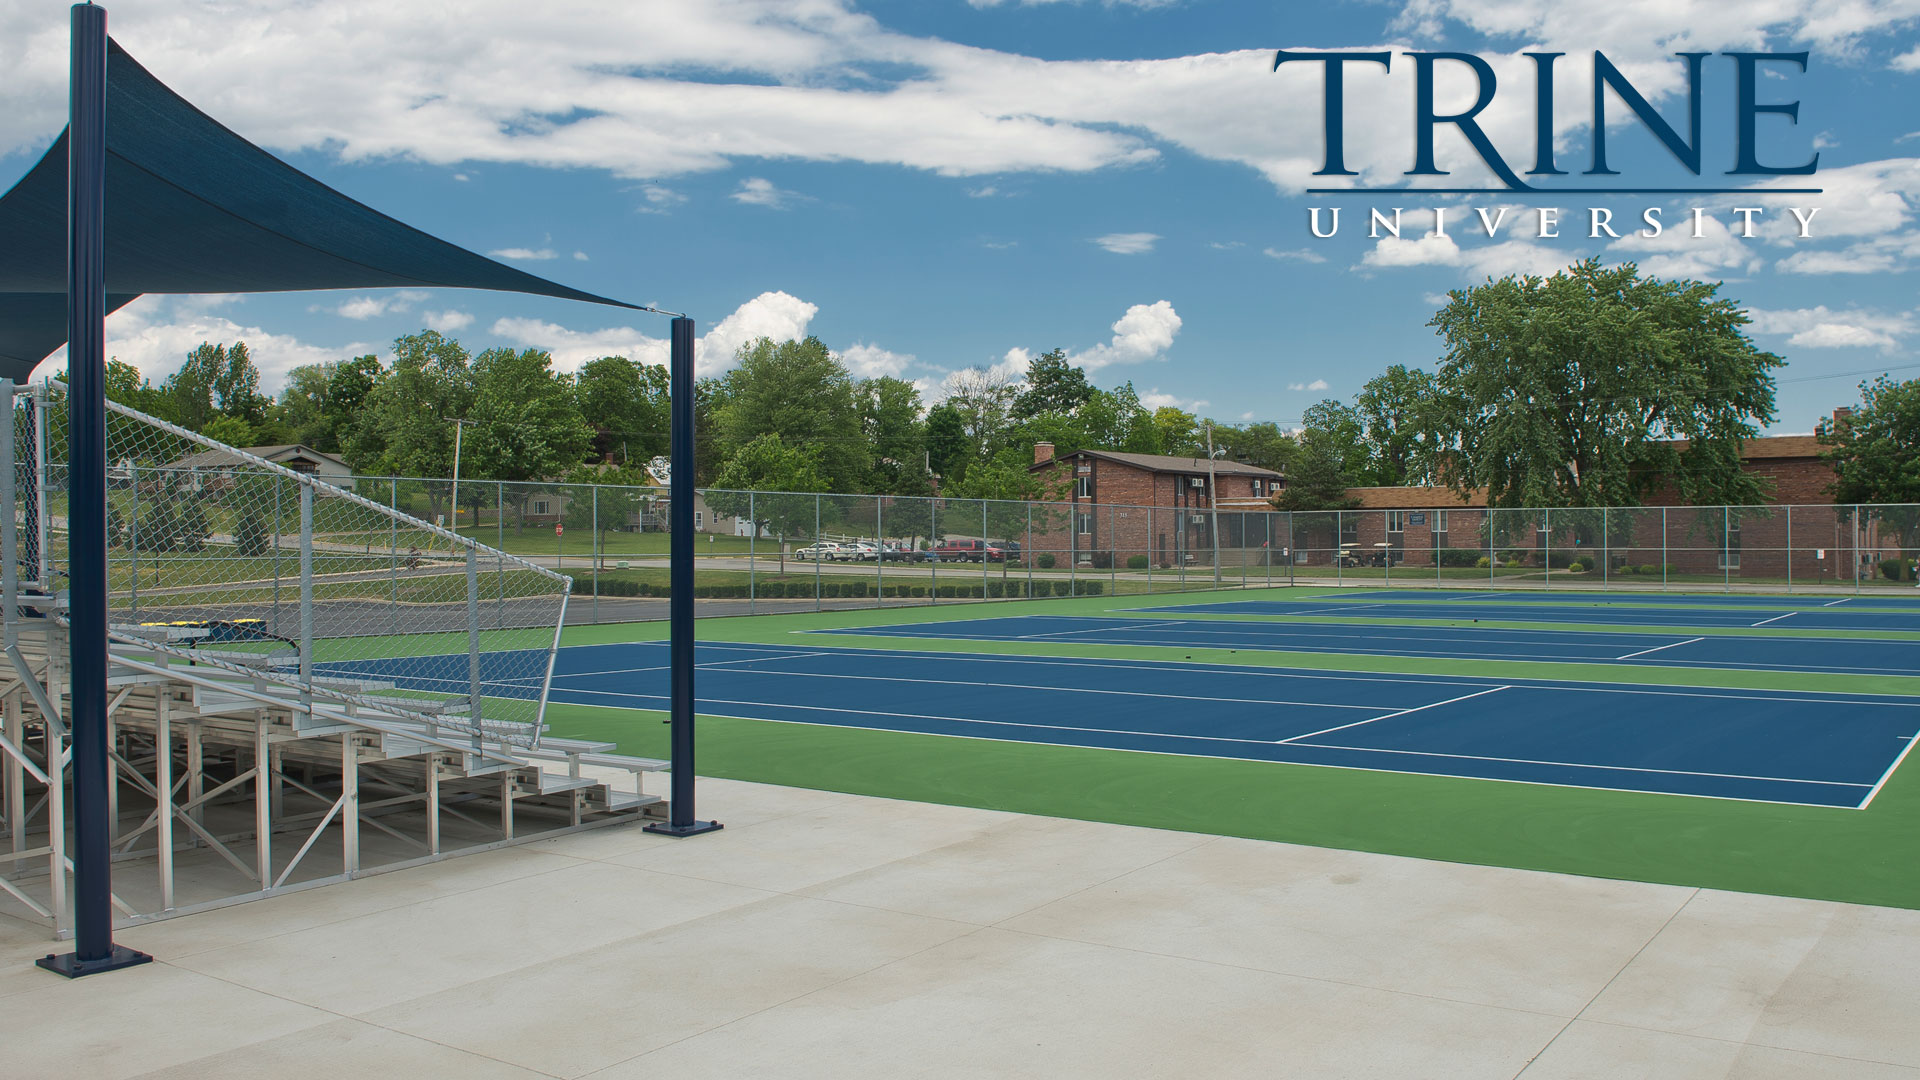 Outside tennis courts at Trine University